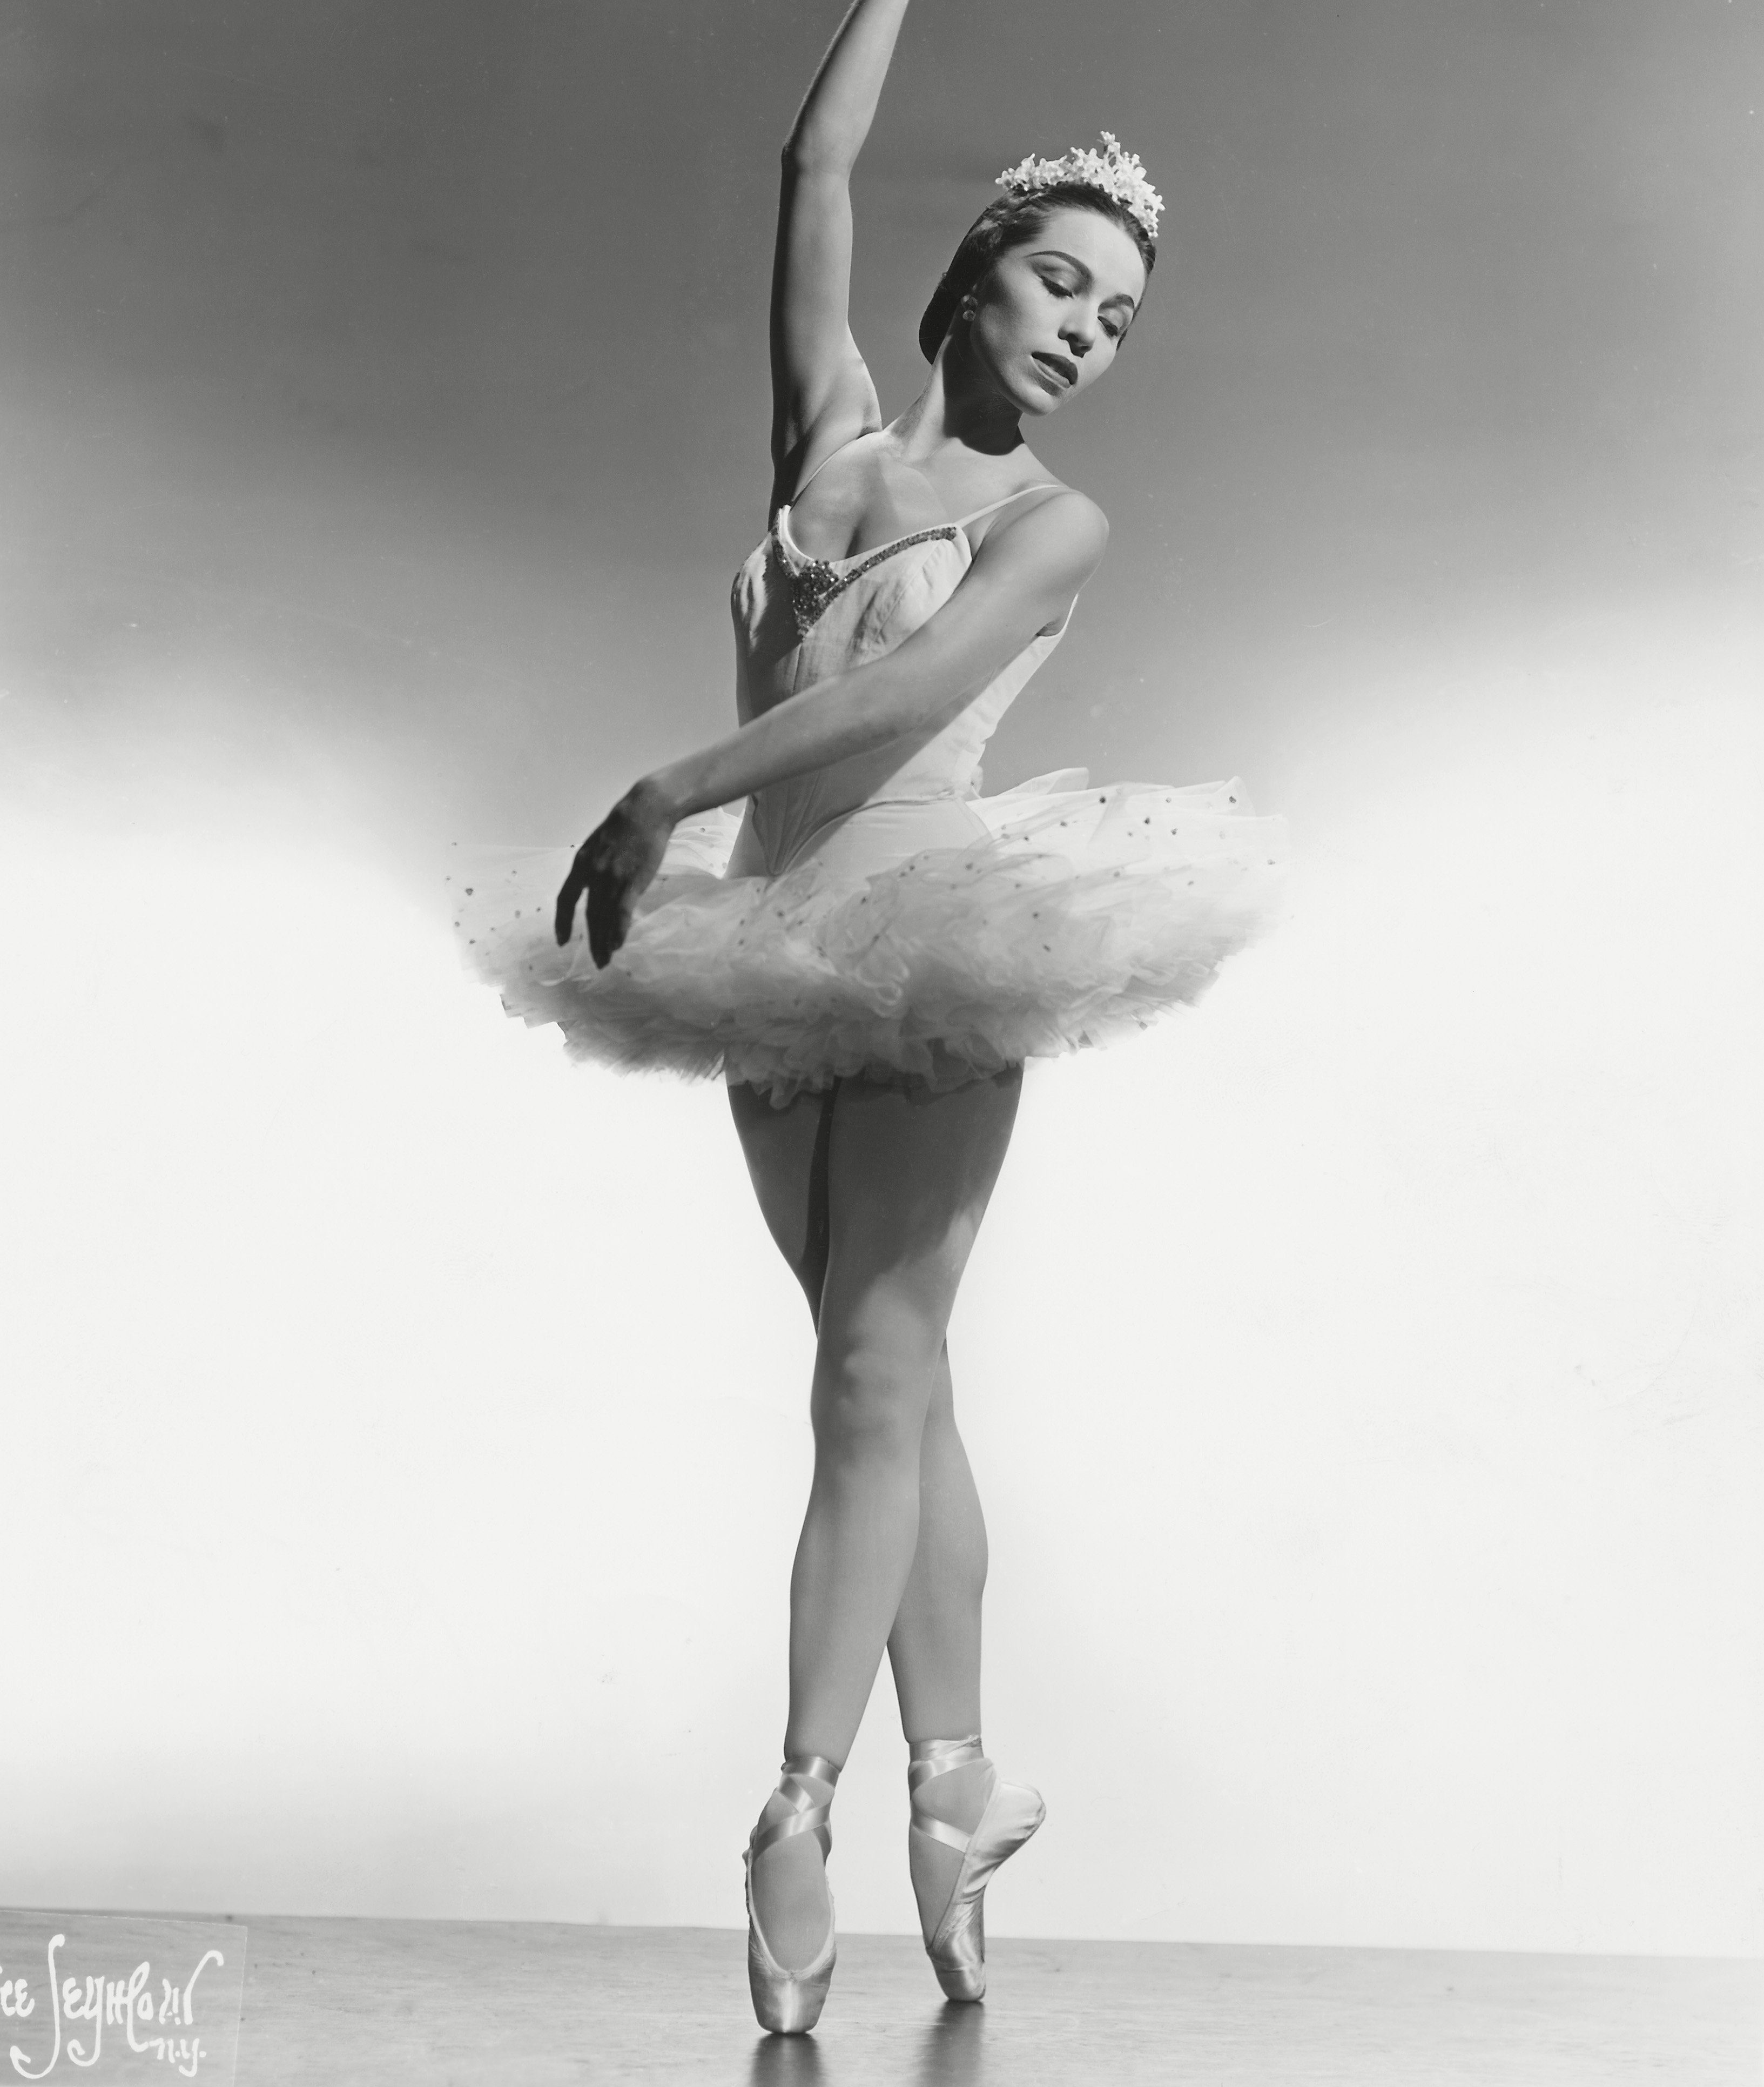 Mandatory Credit: Photo by Everett/Shutterstock (10295933a) Maria Tallchief, ballerina of the Ballet Russe De Monte Carlo, 11/6/1954. Historical Collection